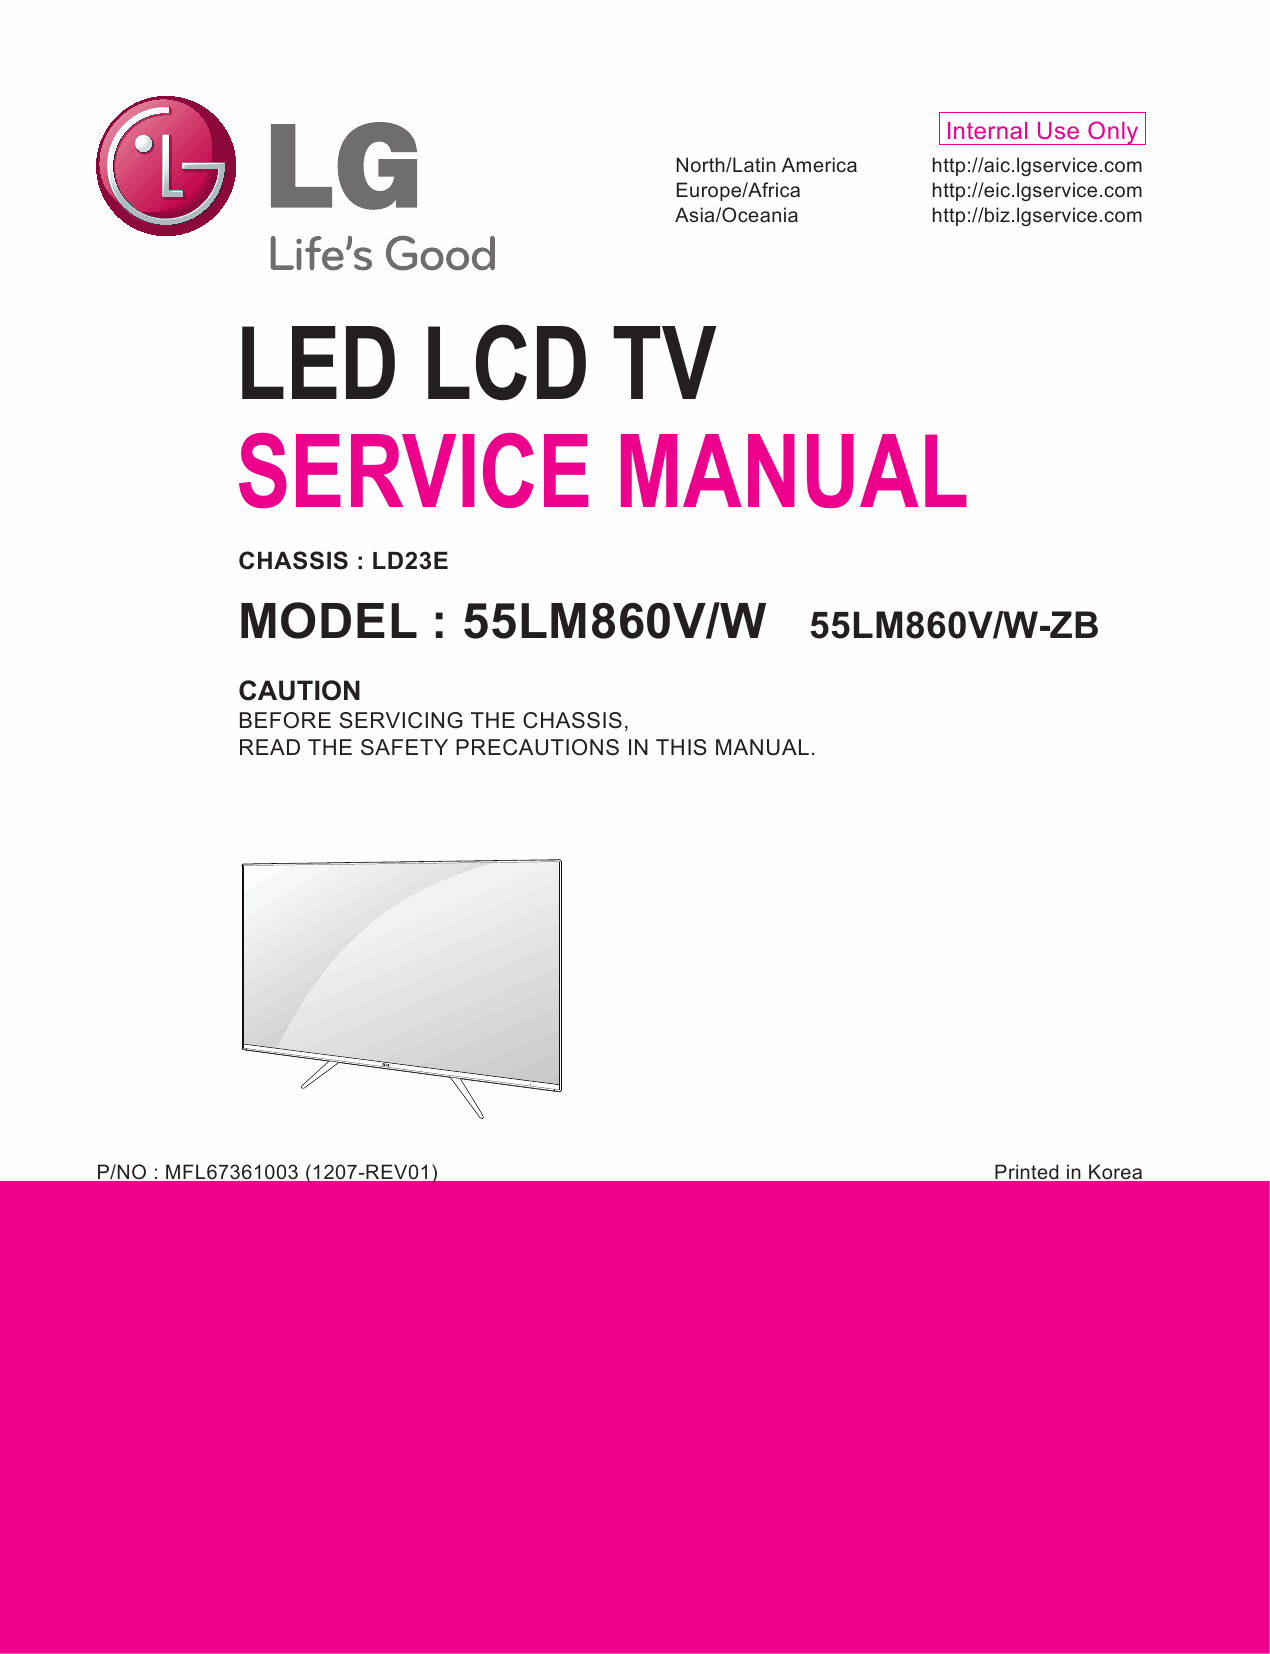 LG_LCD_TV_55LM860V_860W_Service_Manual_2012_Qmanual.com-1